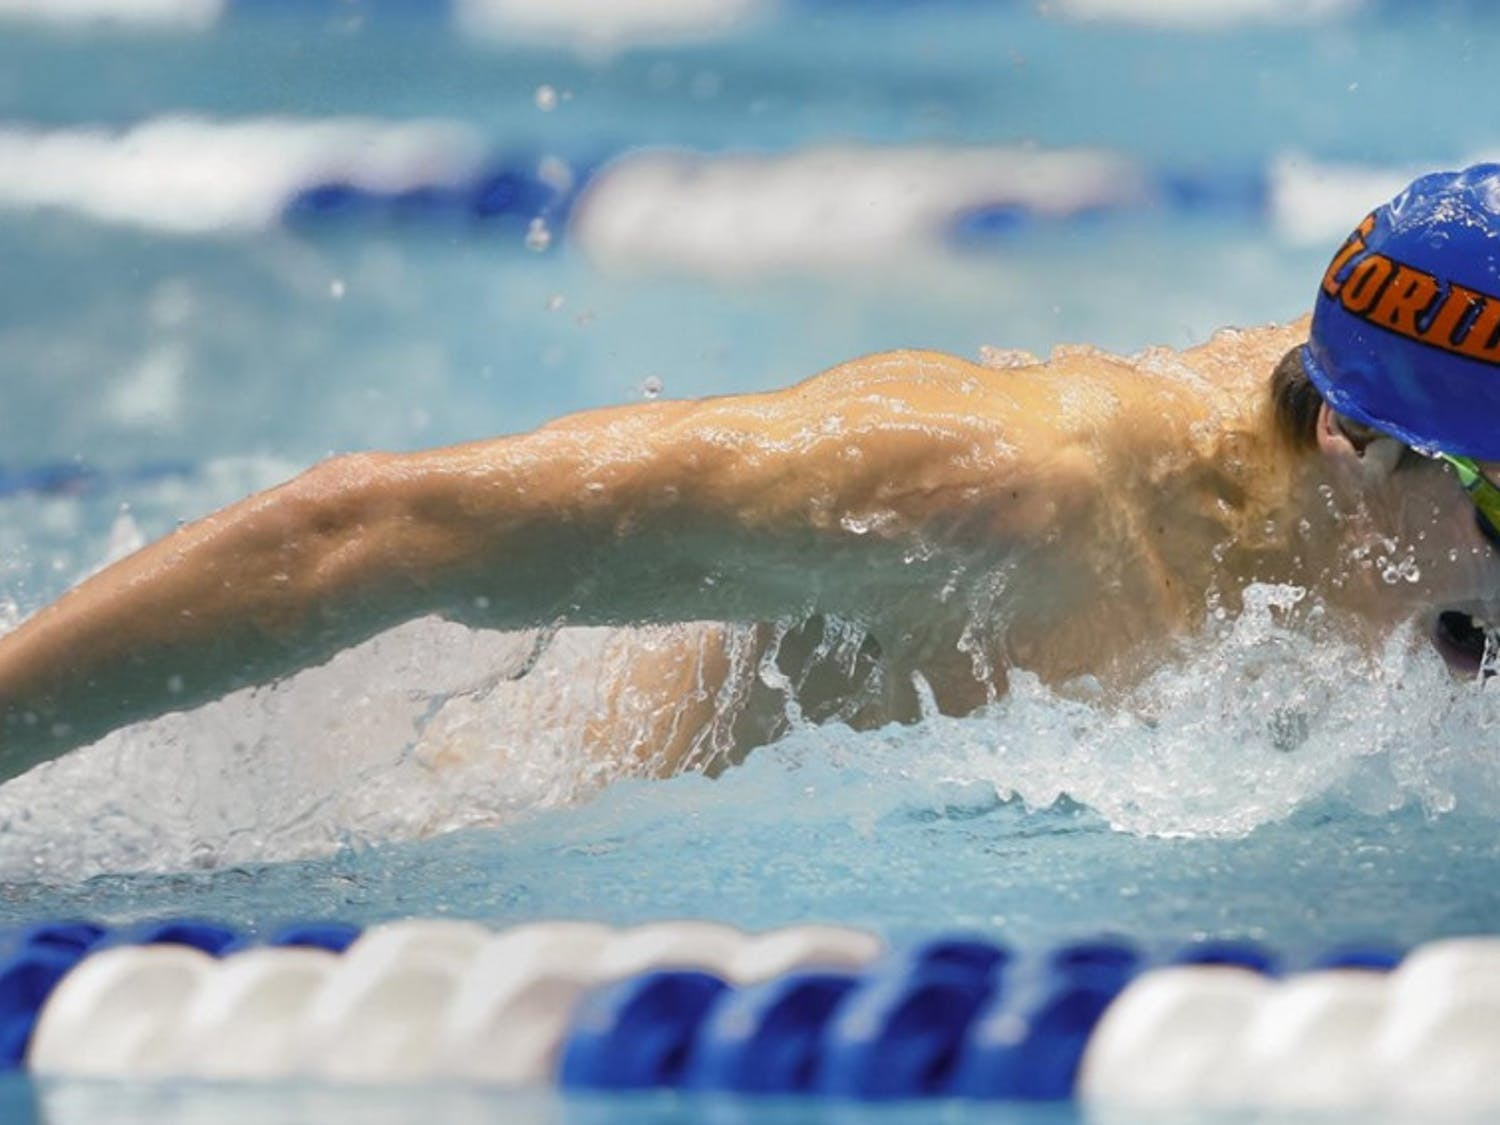 After being named SEC Male Swimmer of the Week, Switkowski reached the podium in three separate events during the Gators swimming and diving teams' win against Alabama in Tuscaloosa.